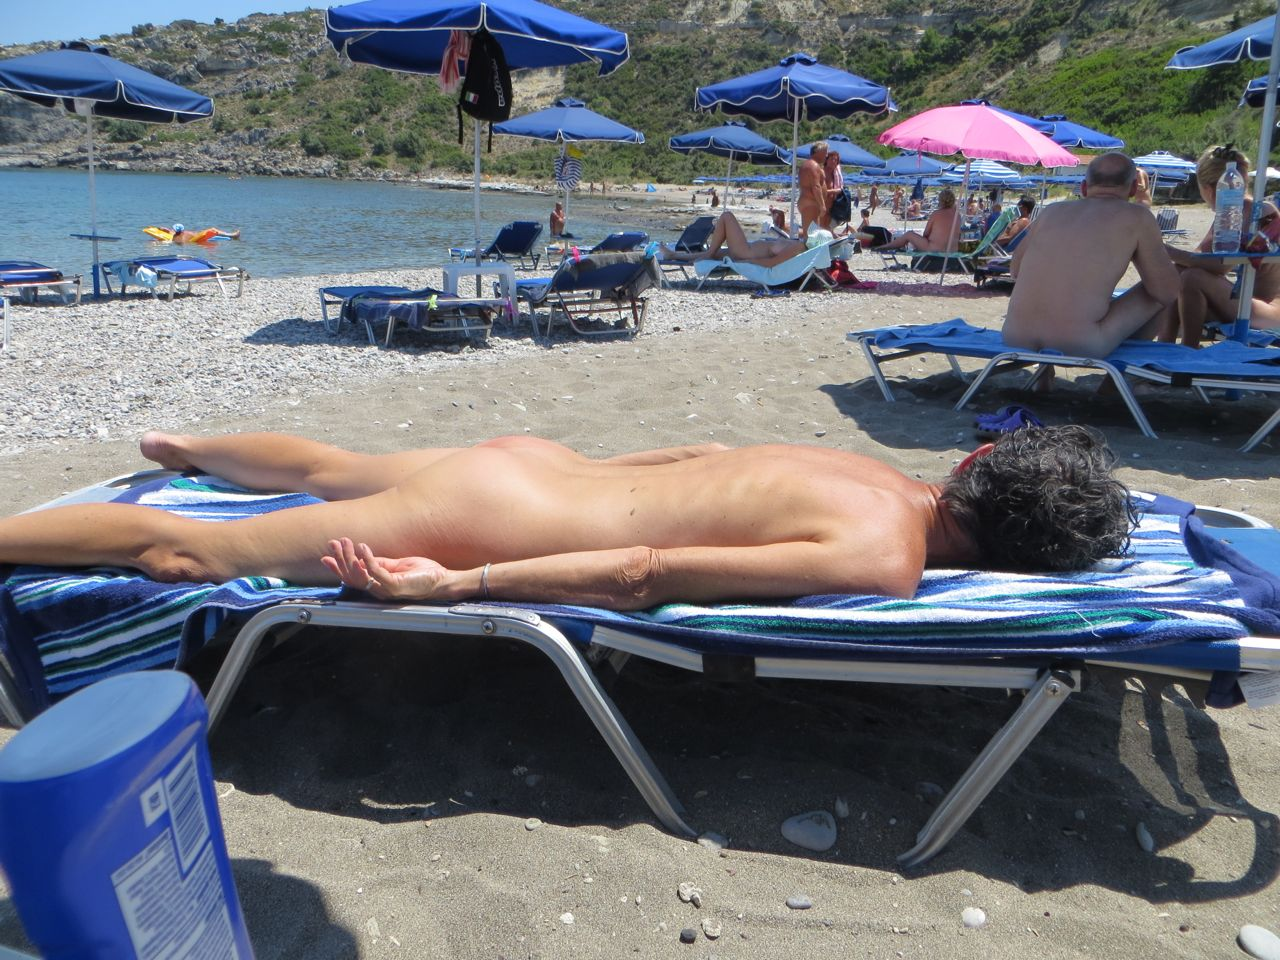 Greek nude beach photos